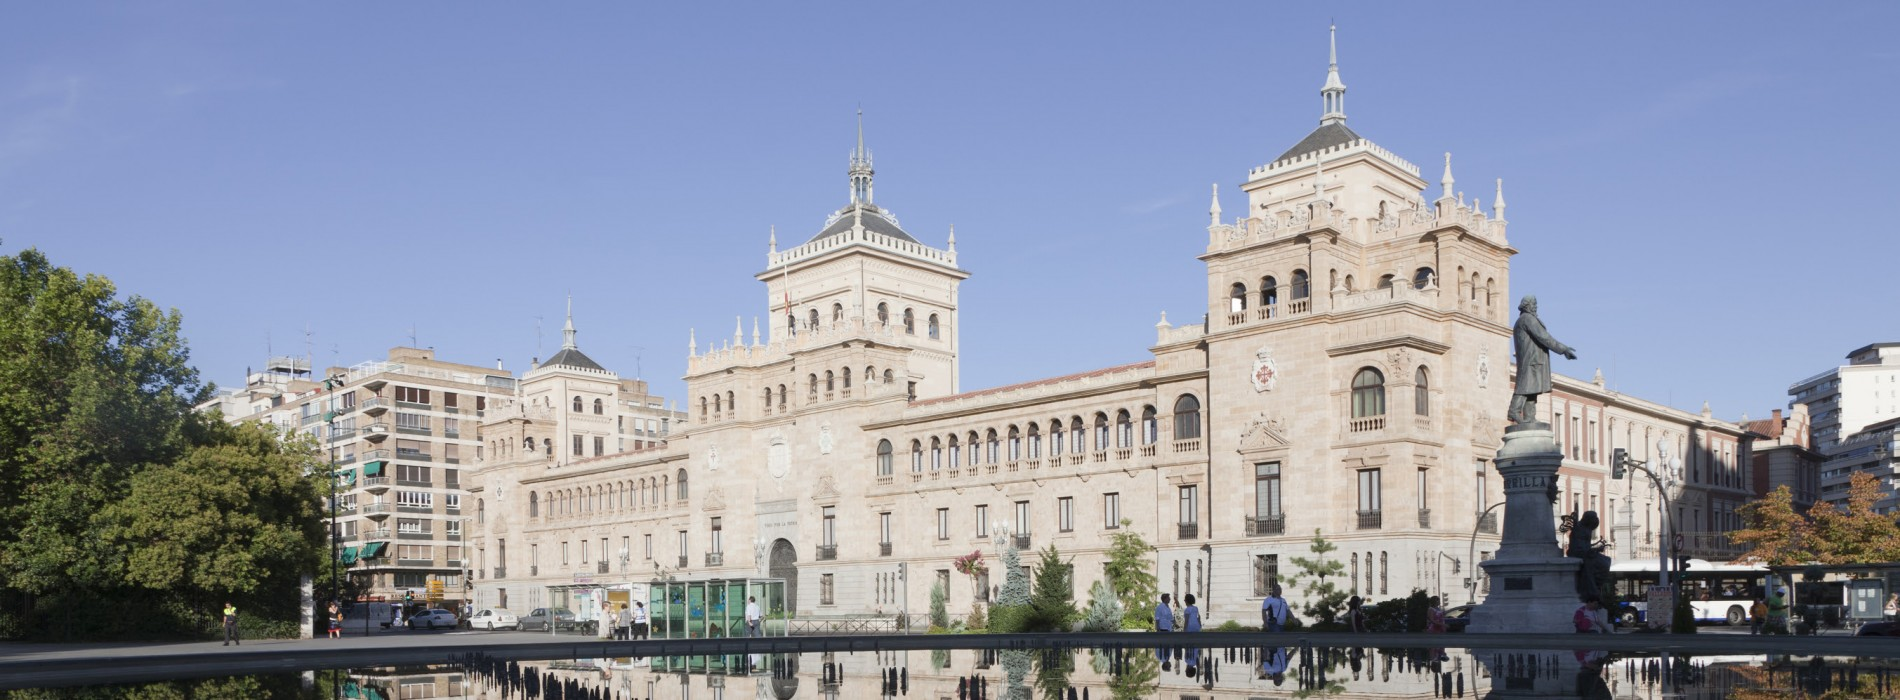 UNWTO Conference in Valladolid to discuss Innovative Tourism Experiences in Urban Destinations